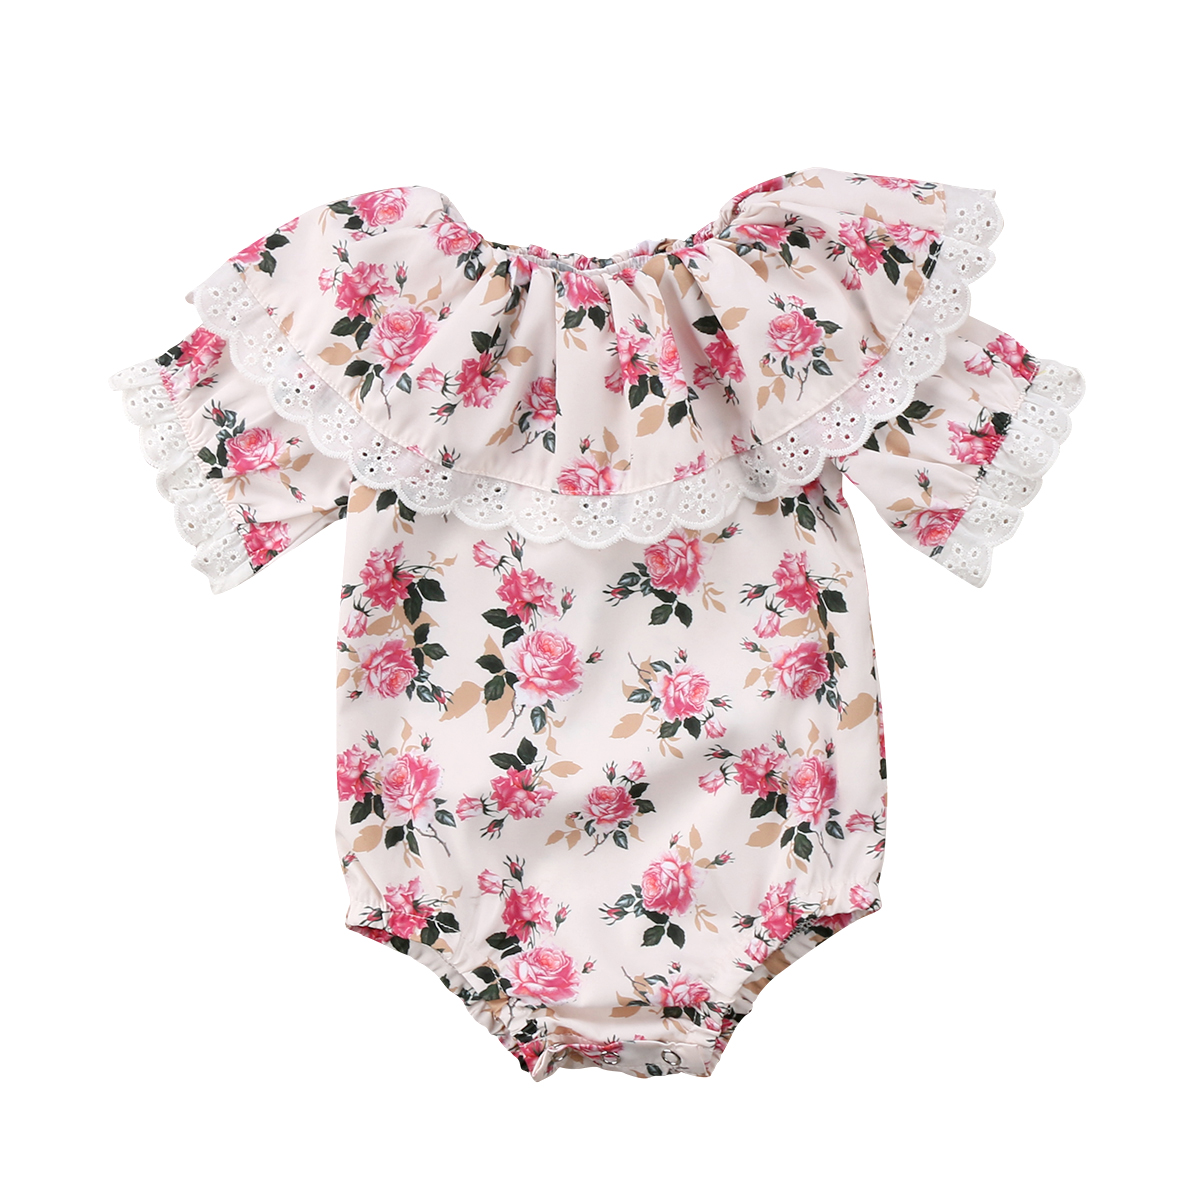 Pudcoco Newborn Baby Girls Rompers Lace Floral Jumpsuit Cotton infant baby girls Short sleeves Outfits Sunsuit Clothes